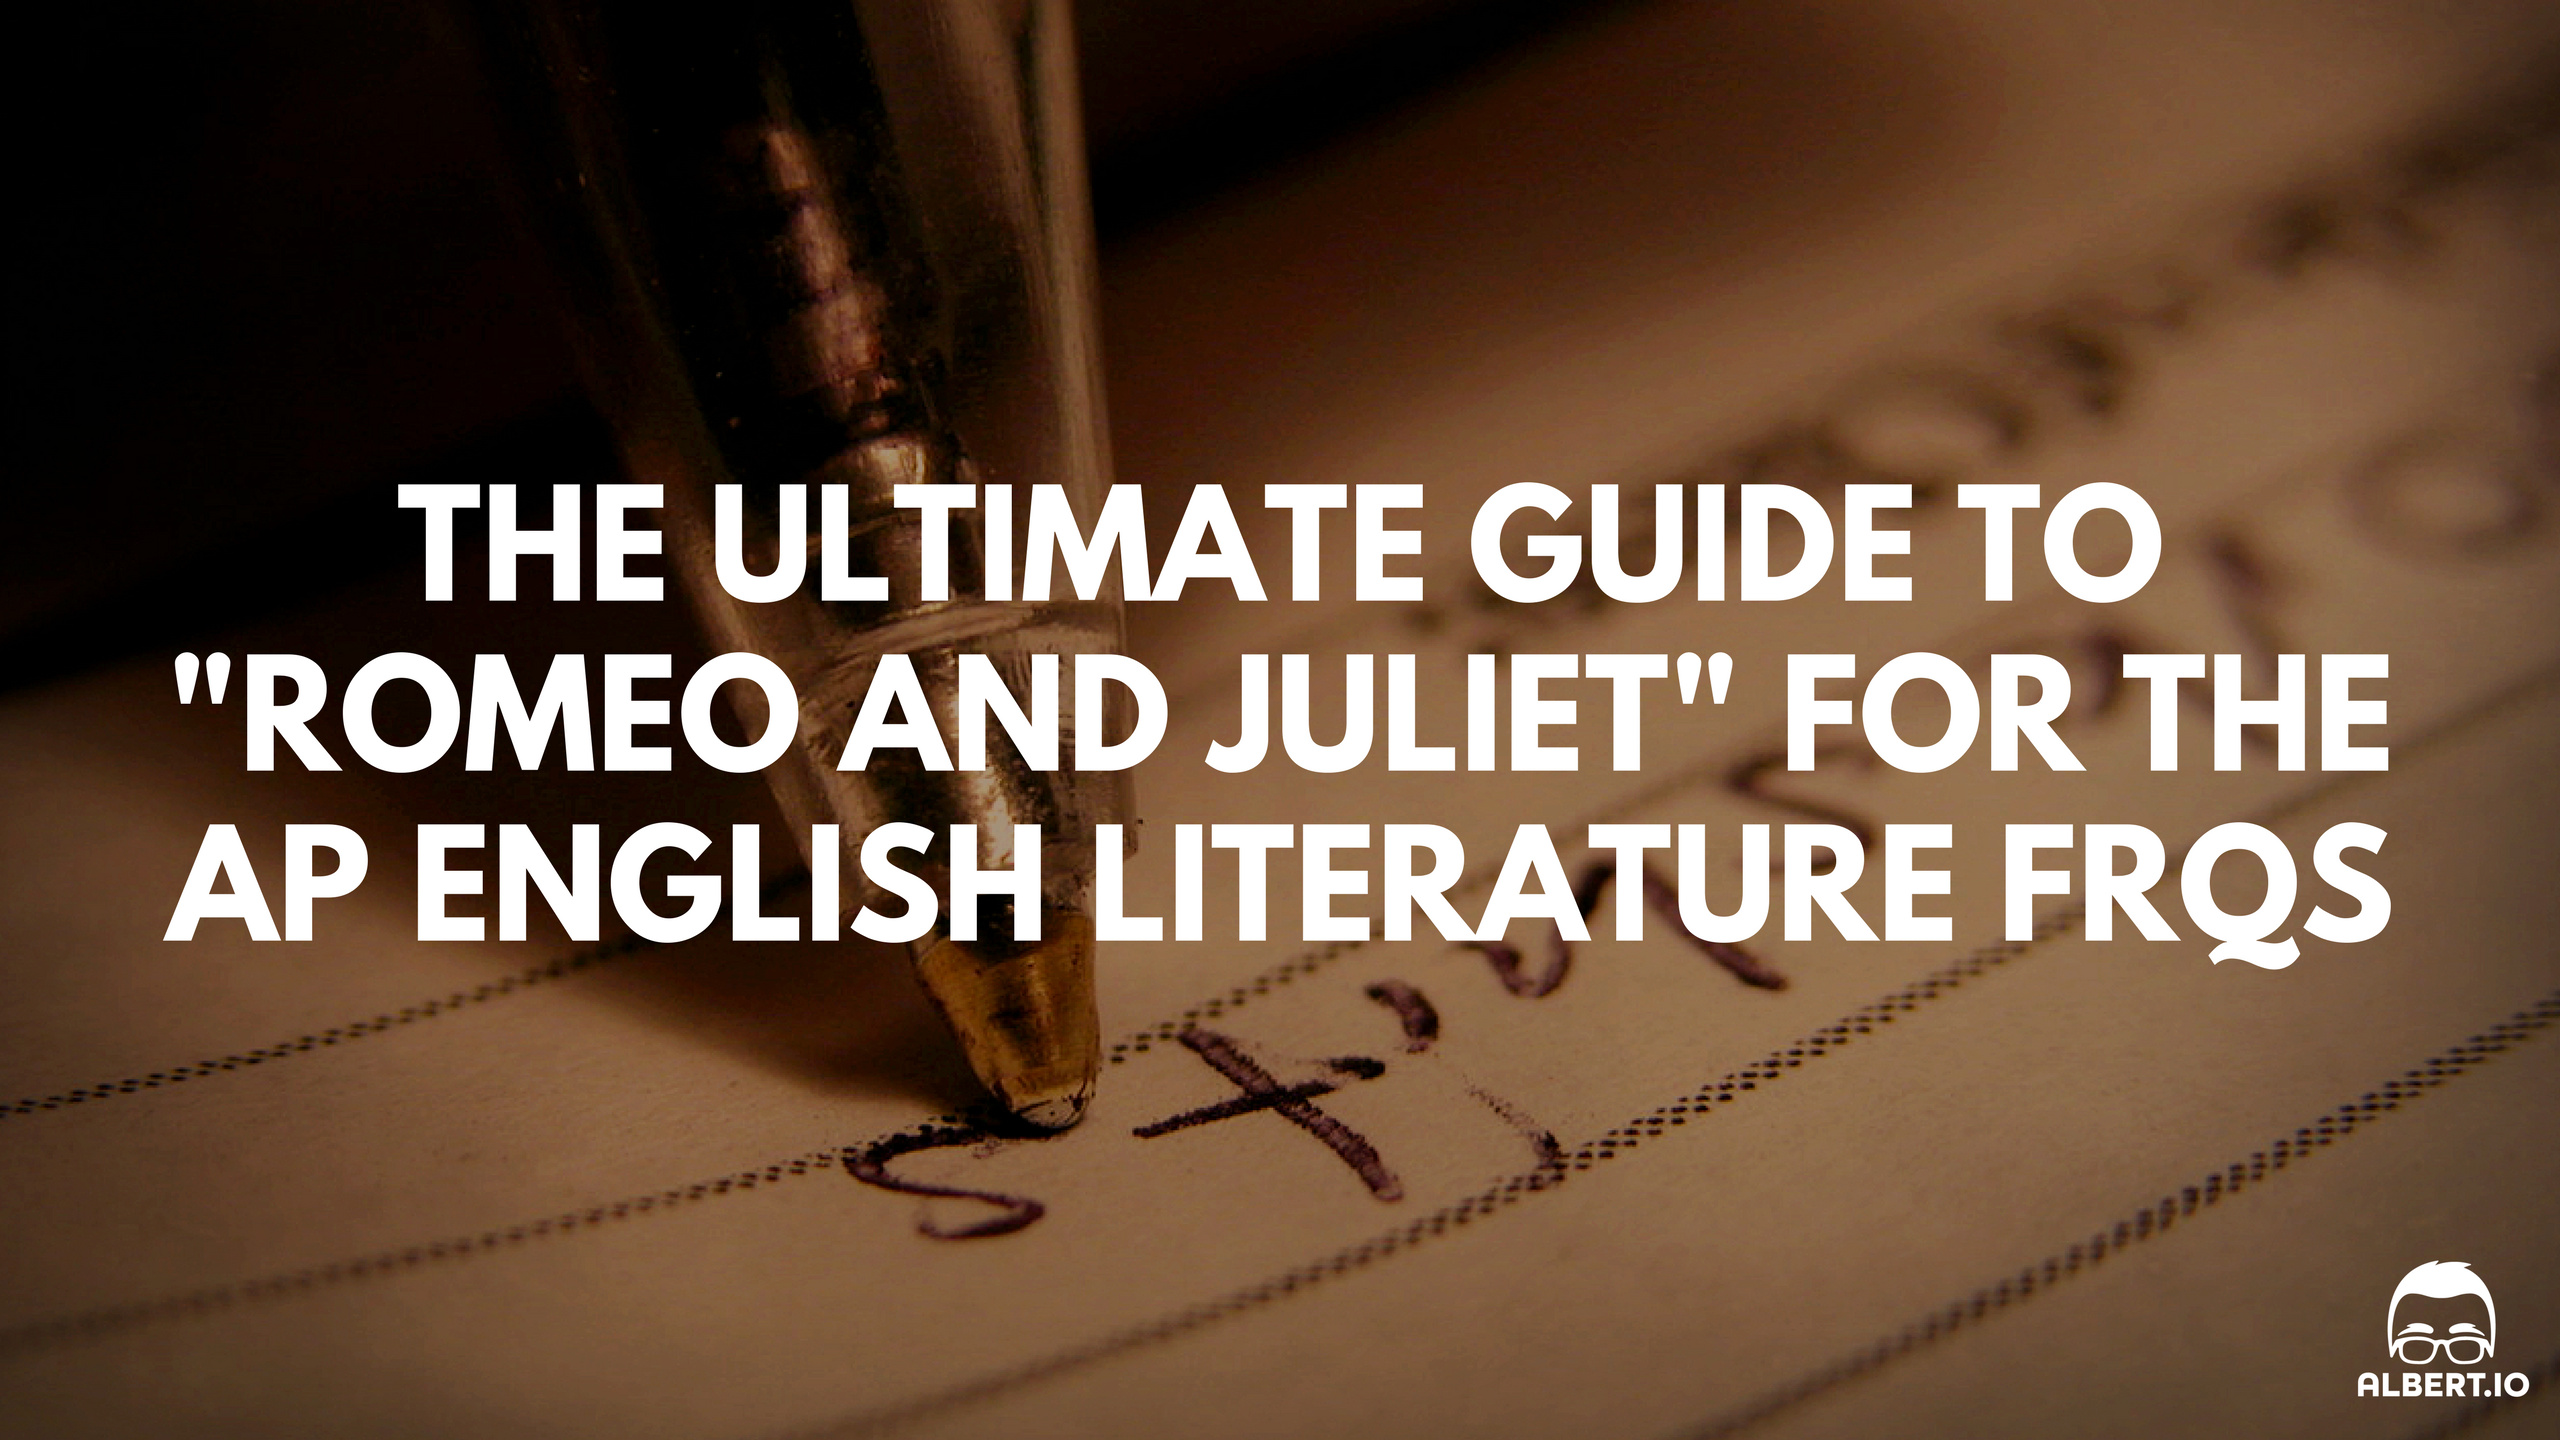 the ultimate guide to romeo and juliet for the ap english  romeo and juliet ap english lit essay